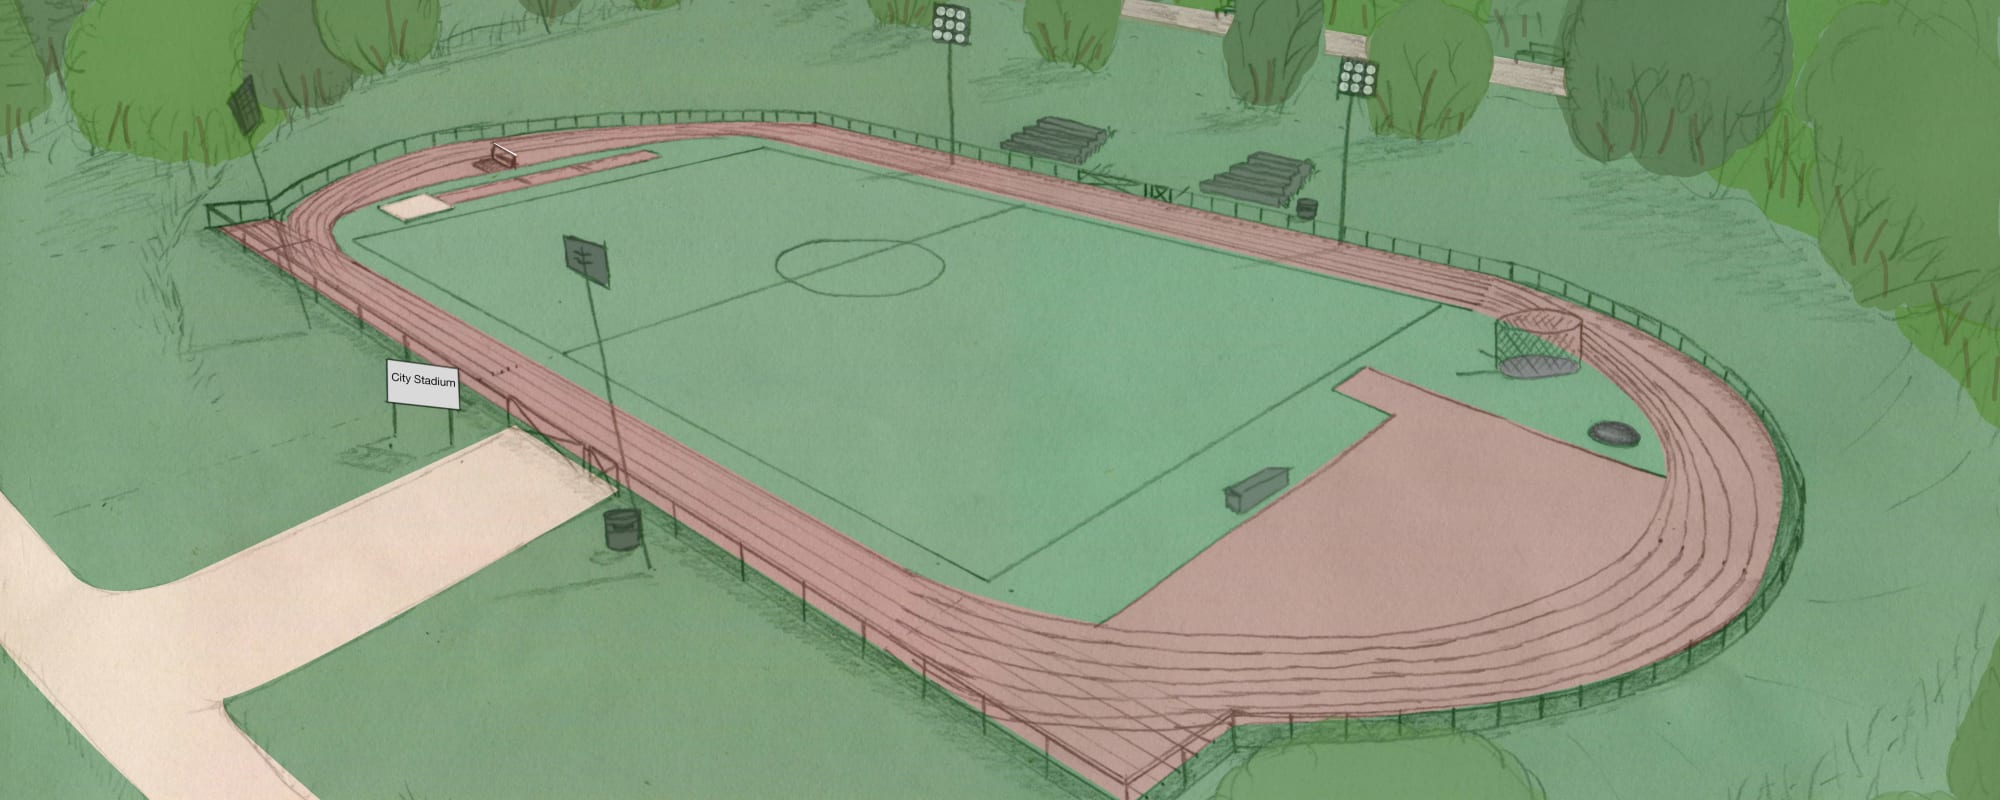 A new running track for the City Stadium